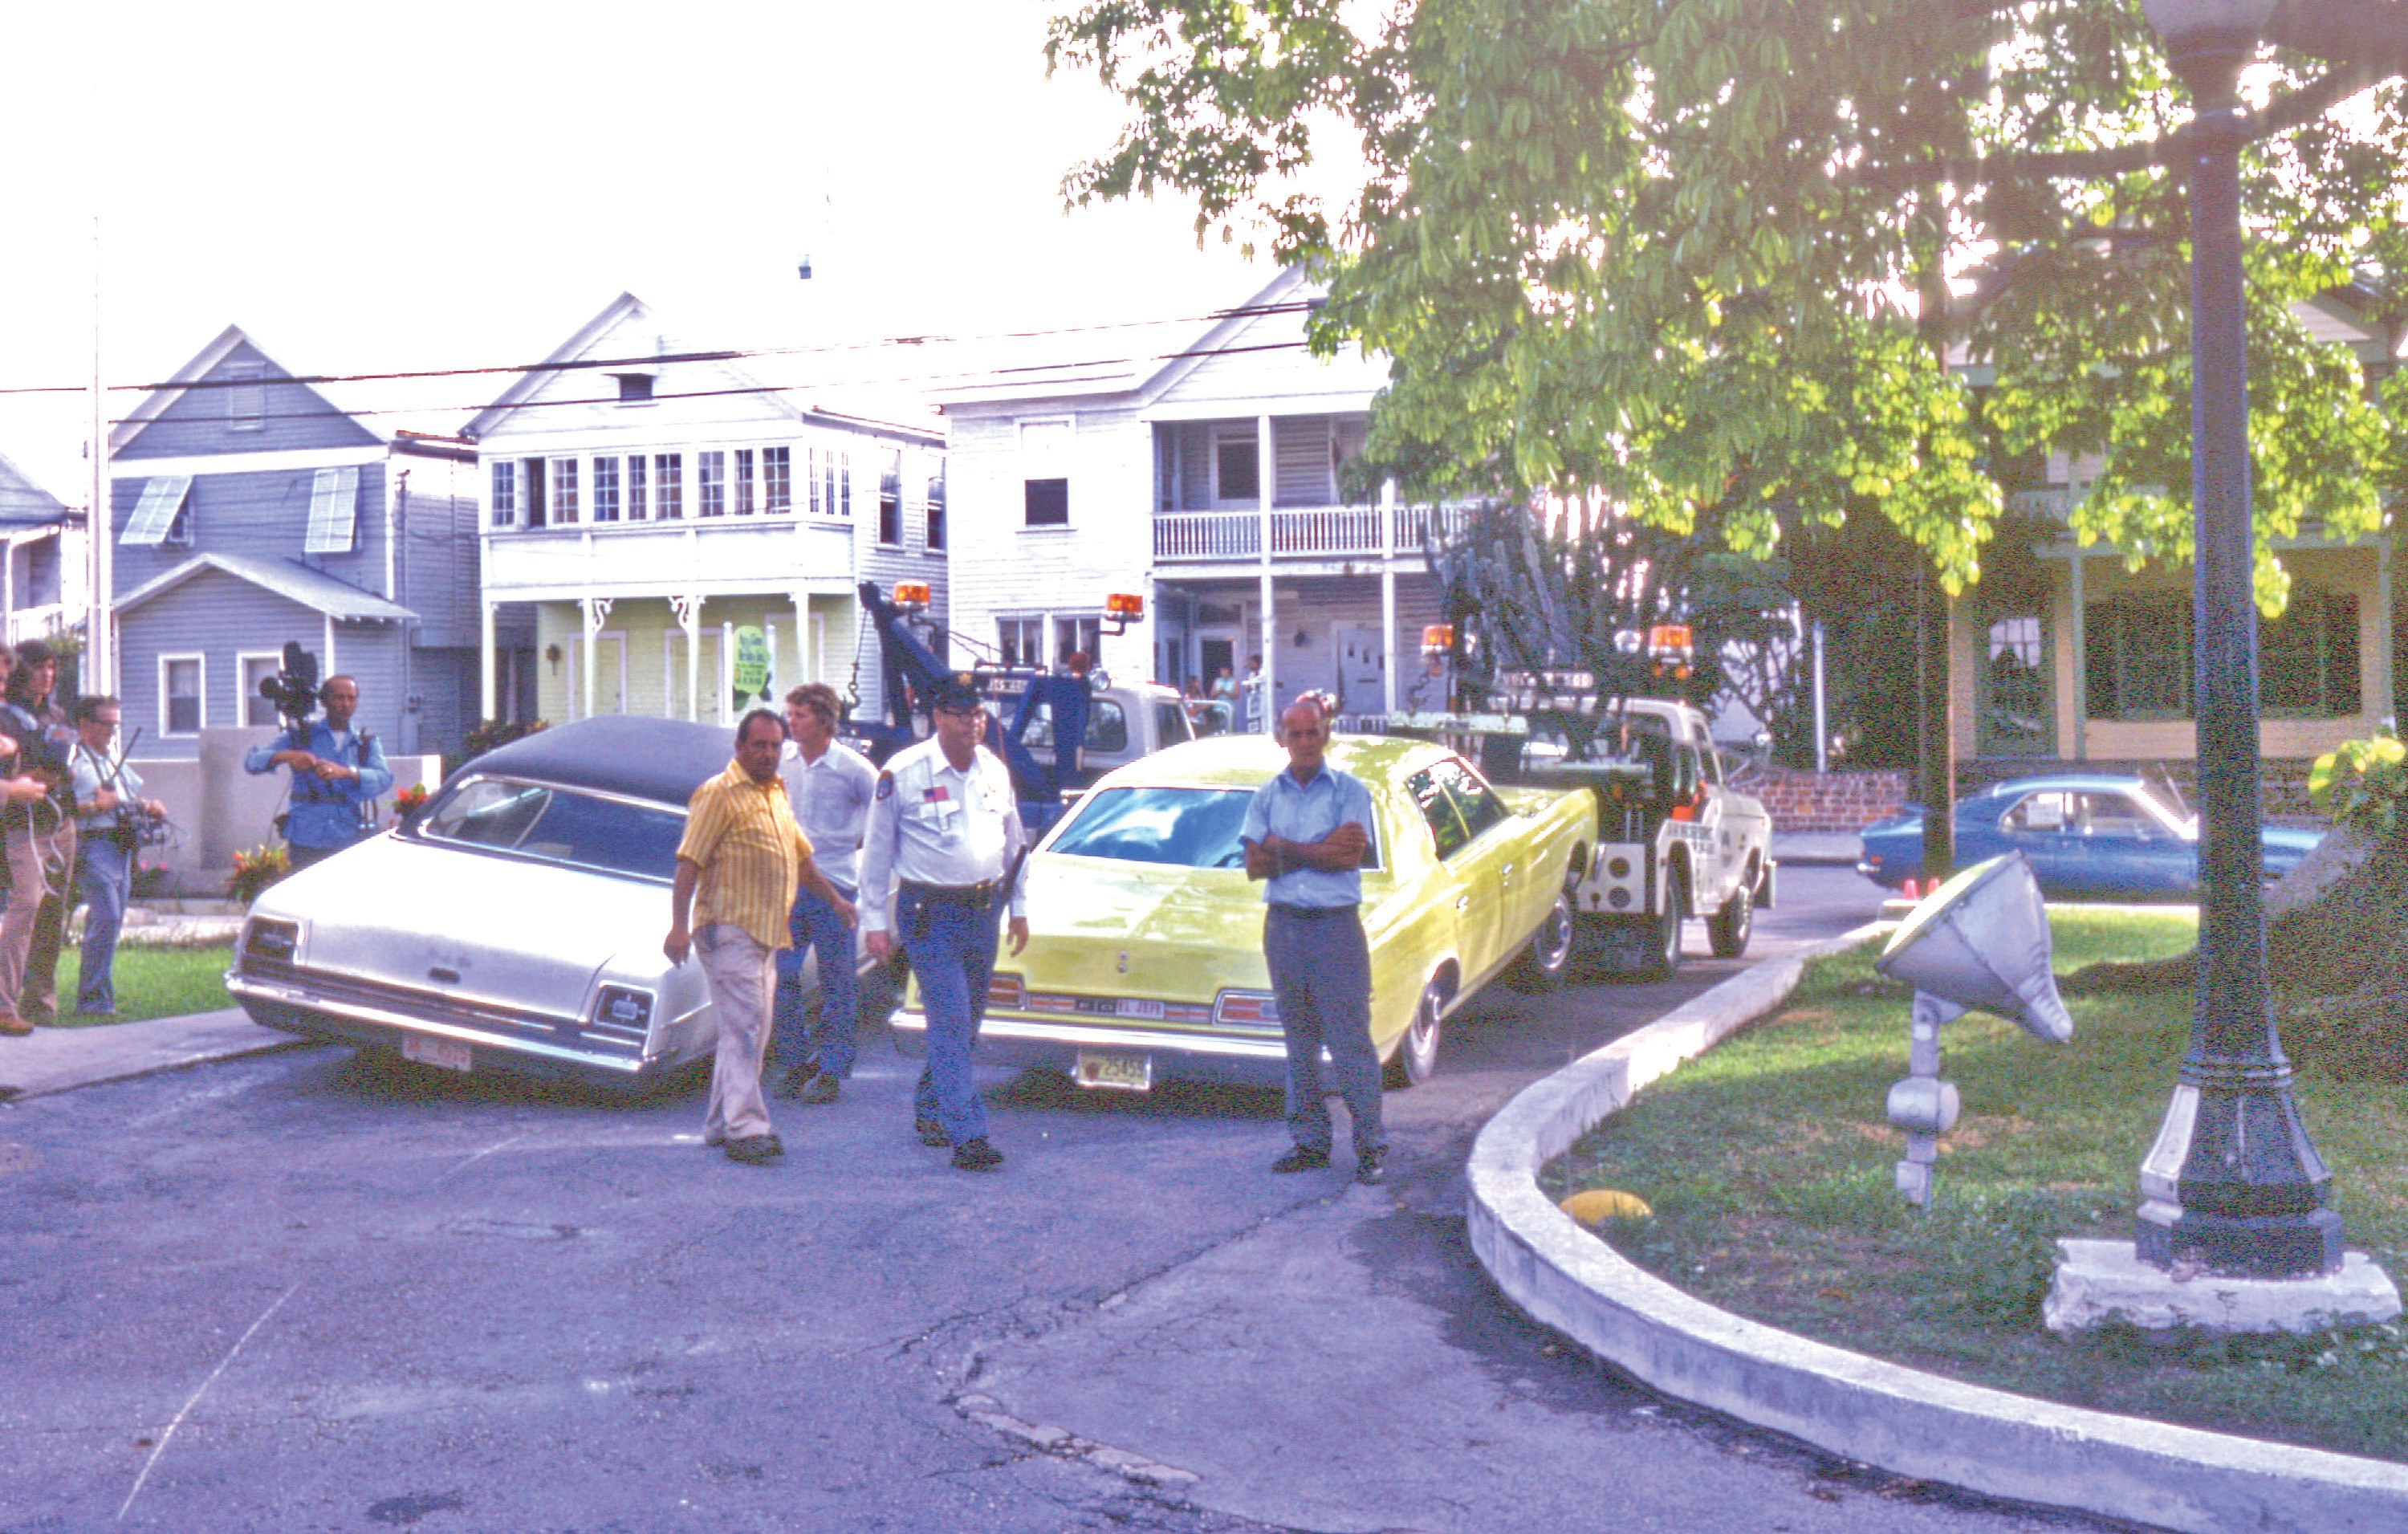 Fire Chief Bum Farto's car being towed after his arrest during Operation Conch in September 1976.